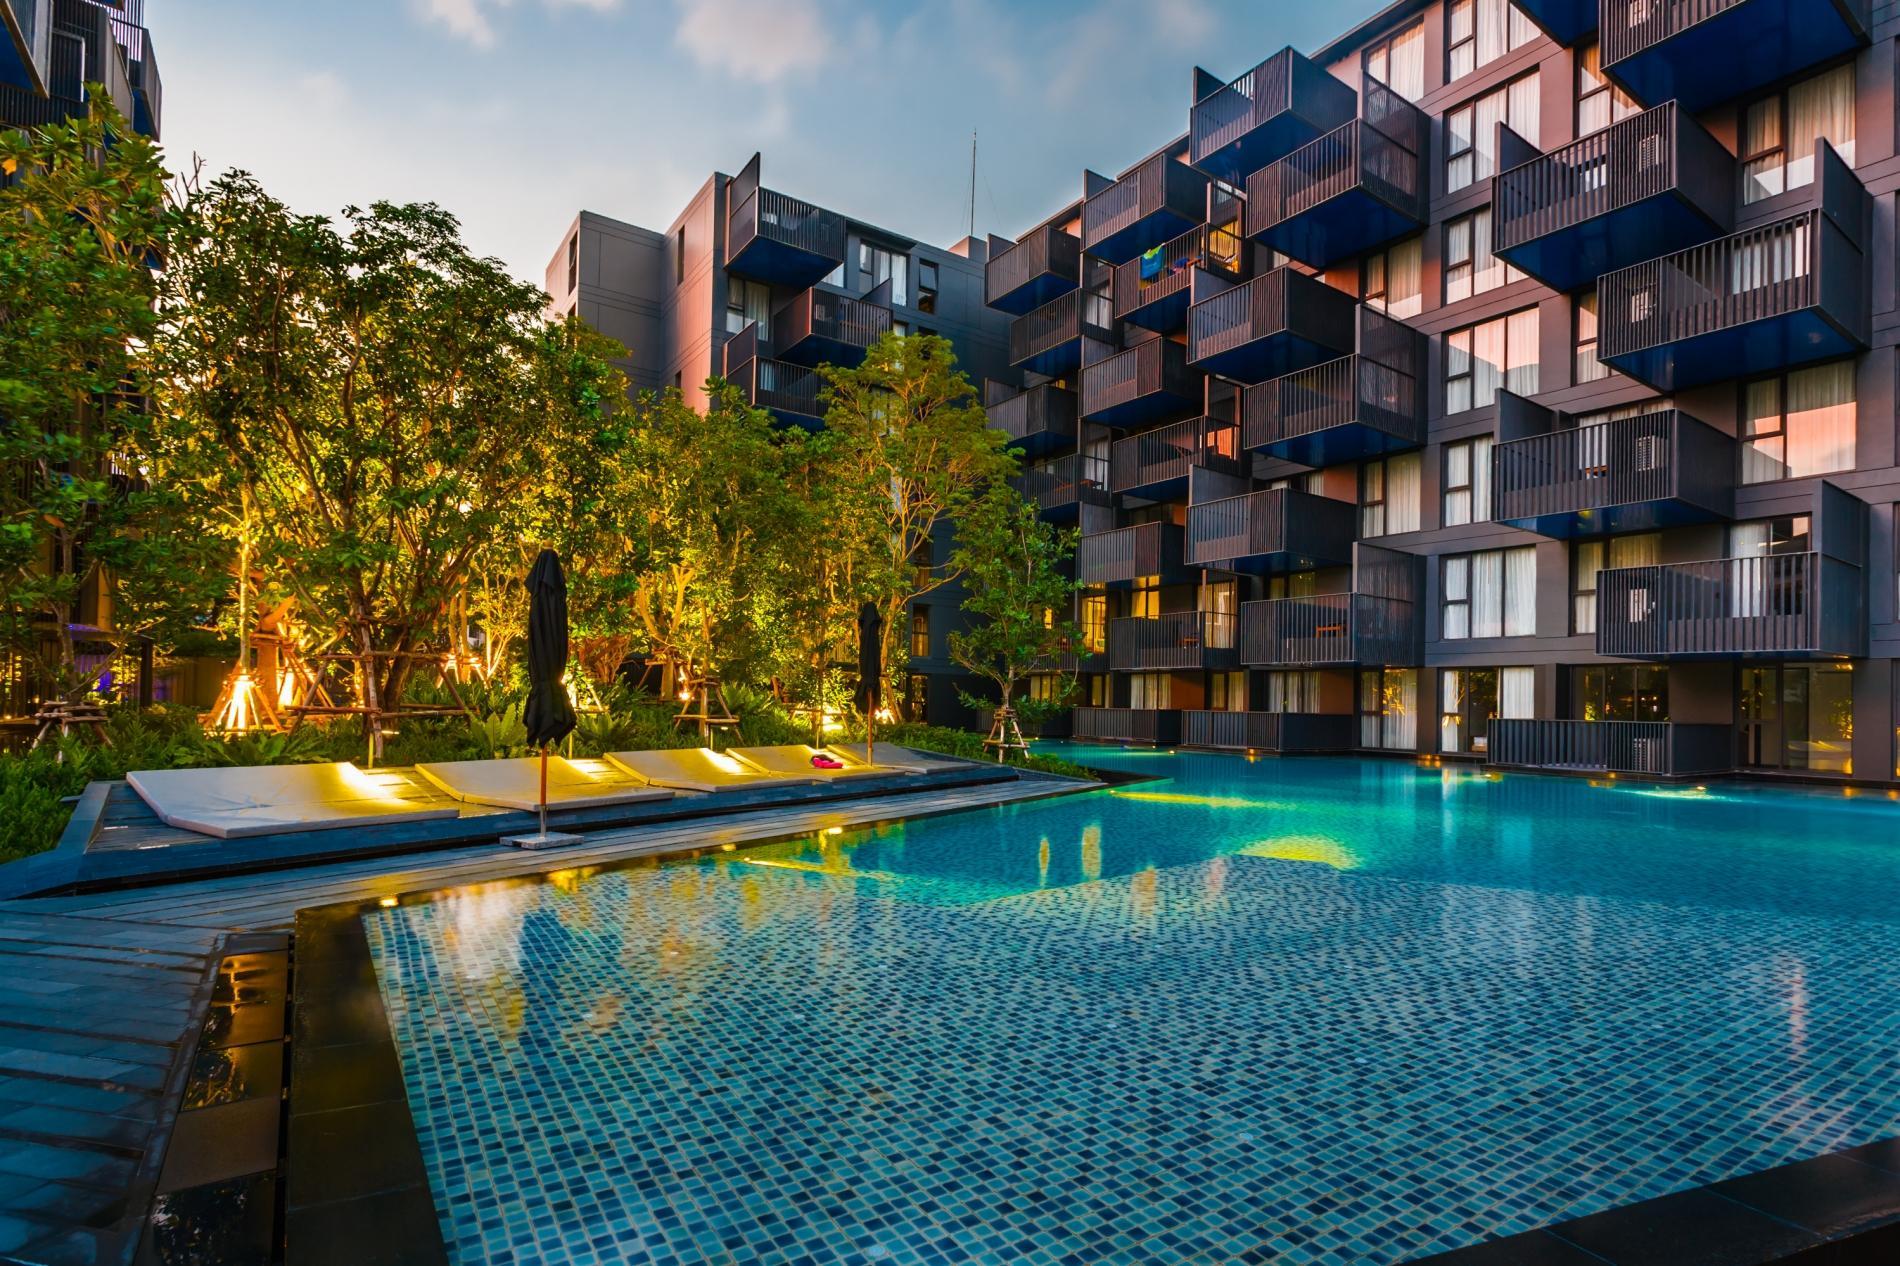 Apartment D9 - The Deck Patong  rooftop pool  gym and great location  photo 16860657